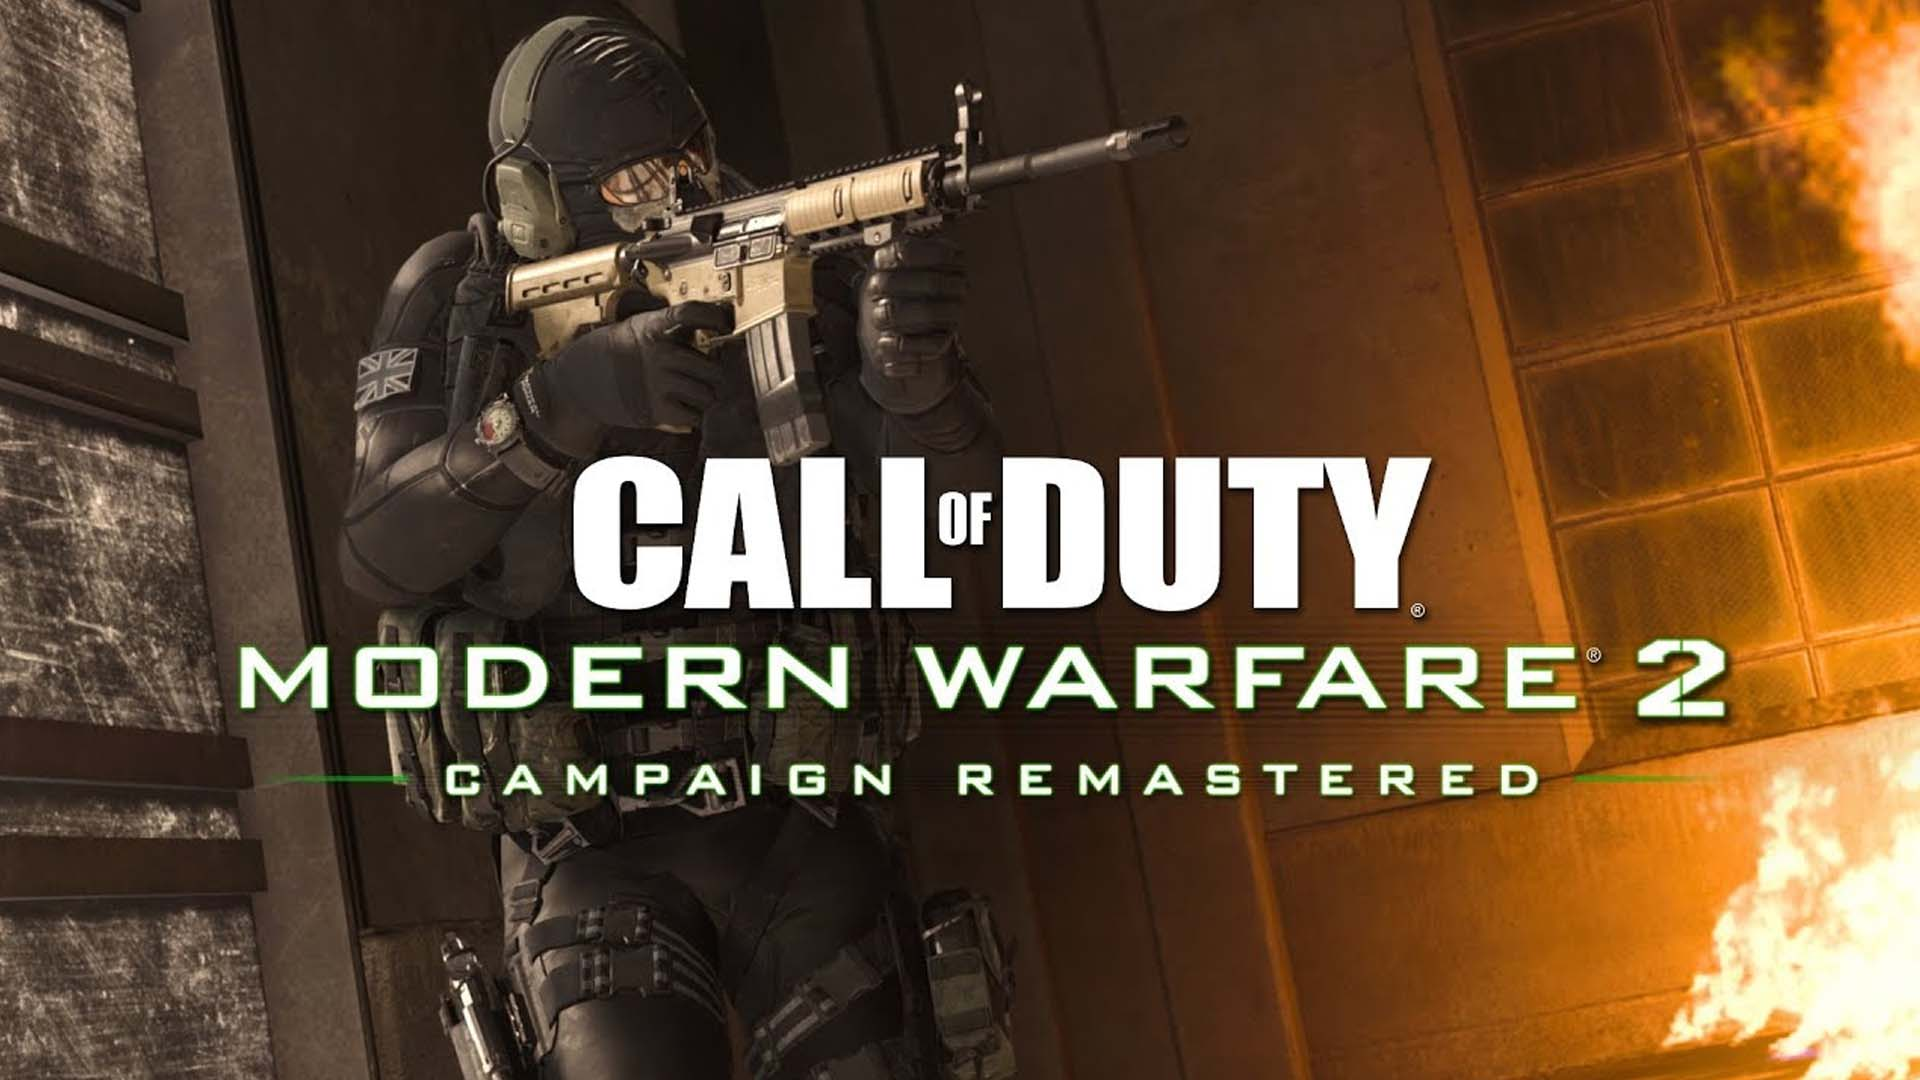 jeux video call of duty modern warfare 2 campaign remastered